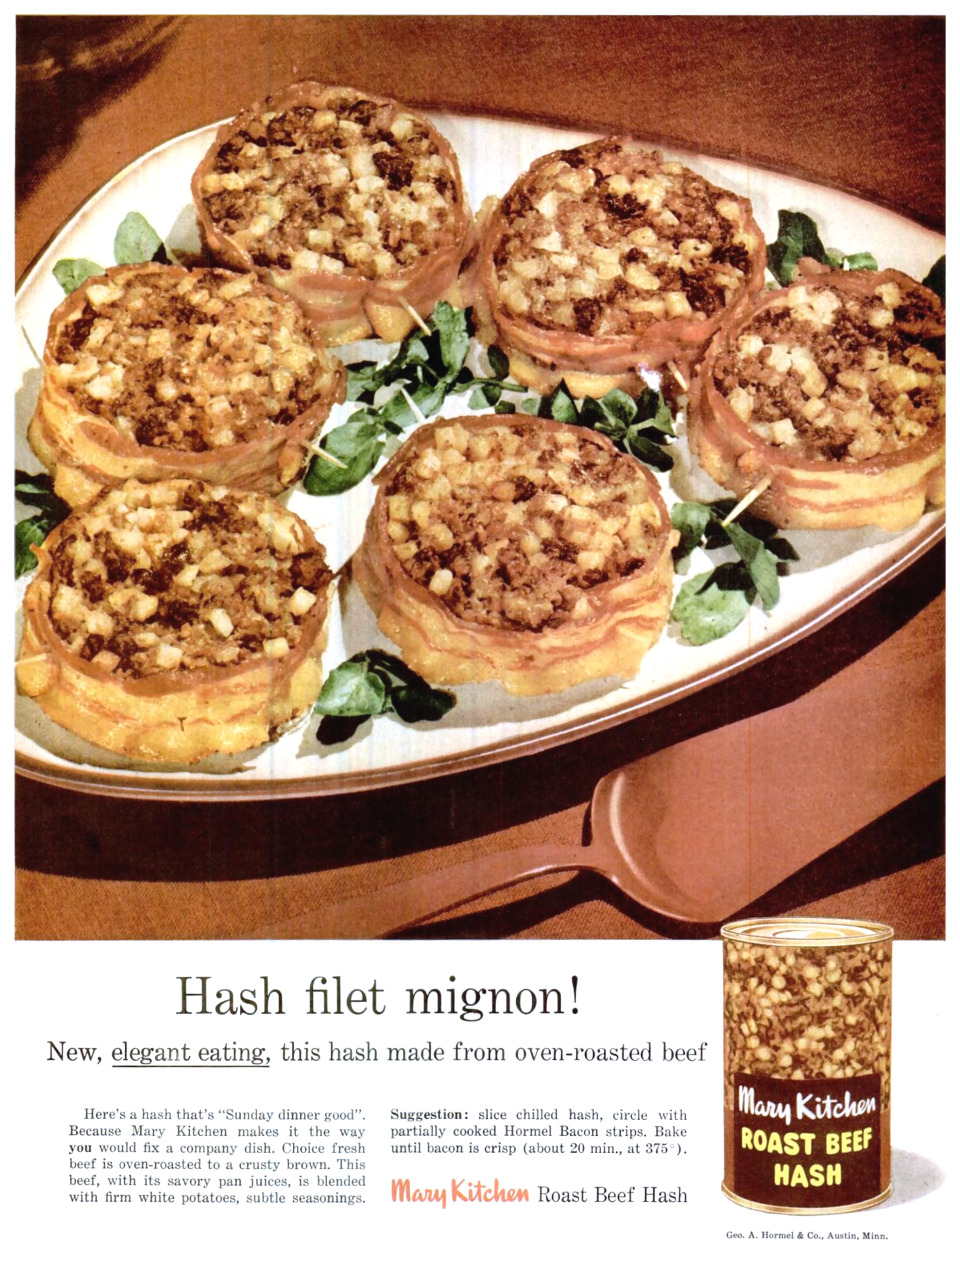 George A. Hormel Company Mary Kitchen Roast Beef Hash - 1956